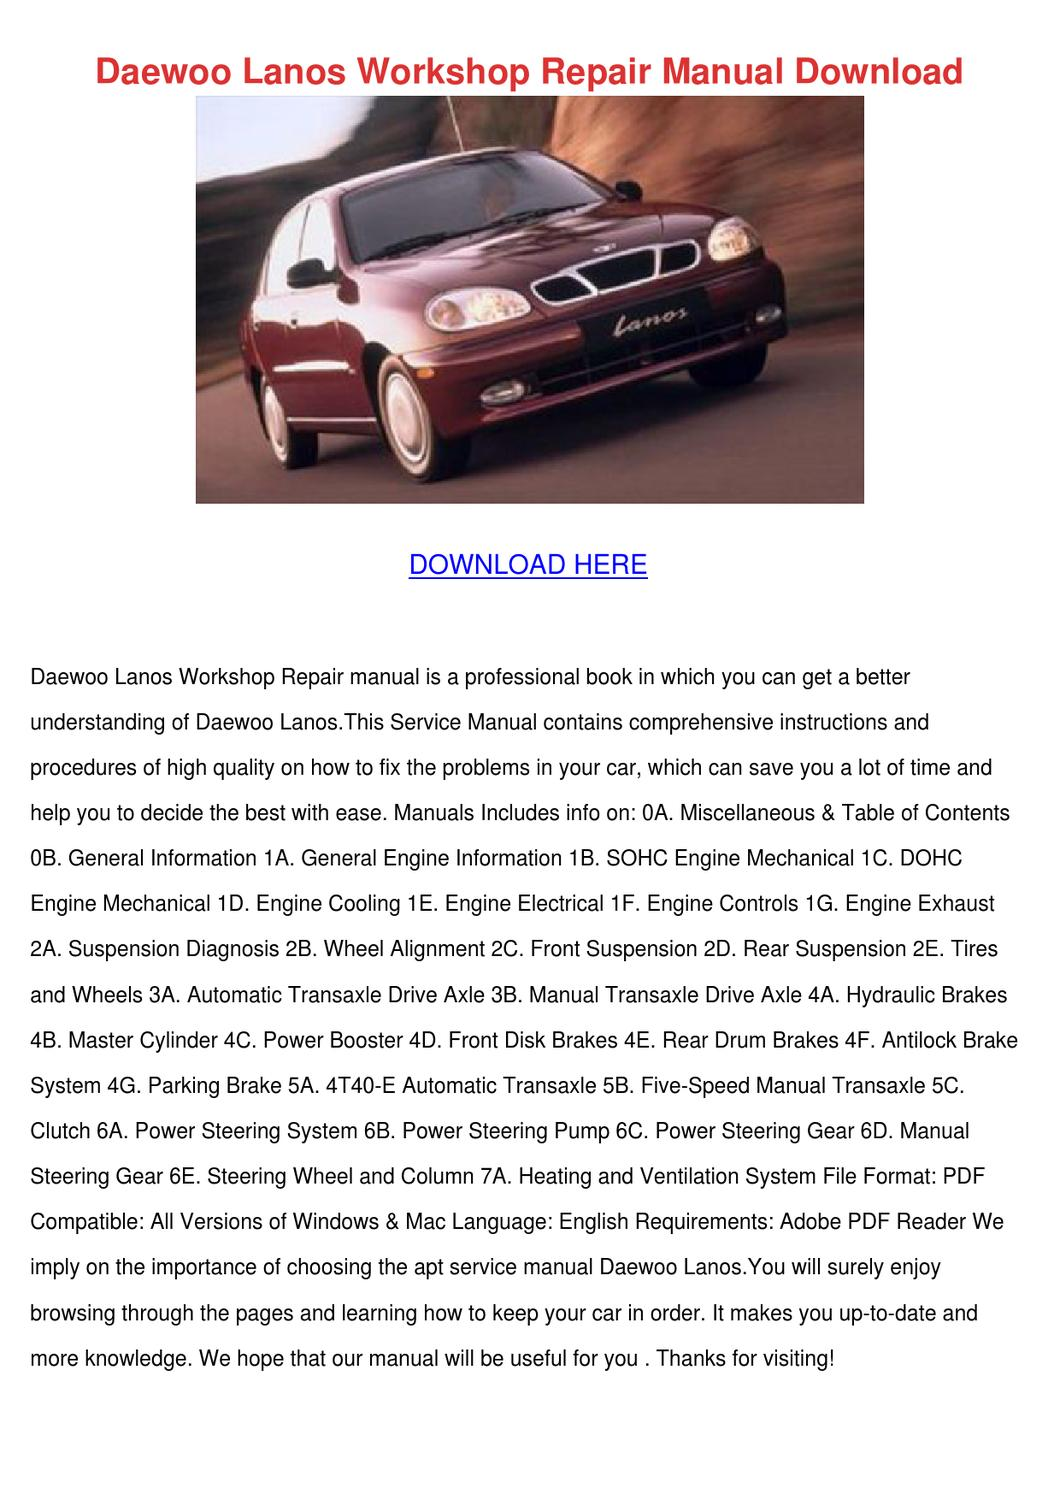 Daewoo Lanos Cylinder Diagram Trusted Wiring Diagrams Engine Workshop Repair Manual Download By Dannycalkins Issuu Sedan